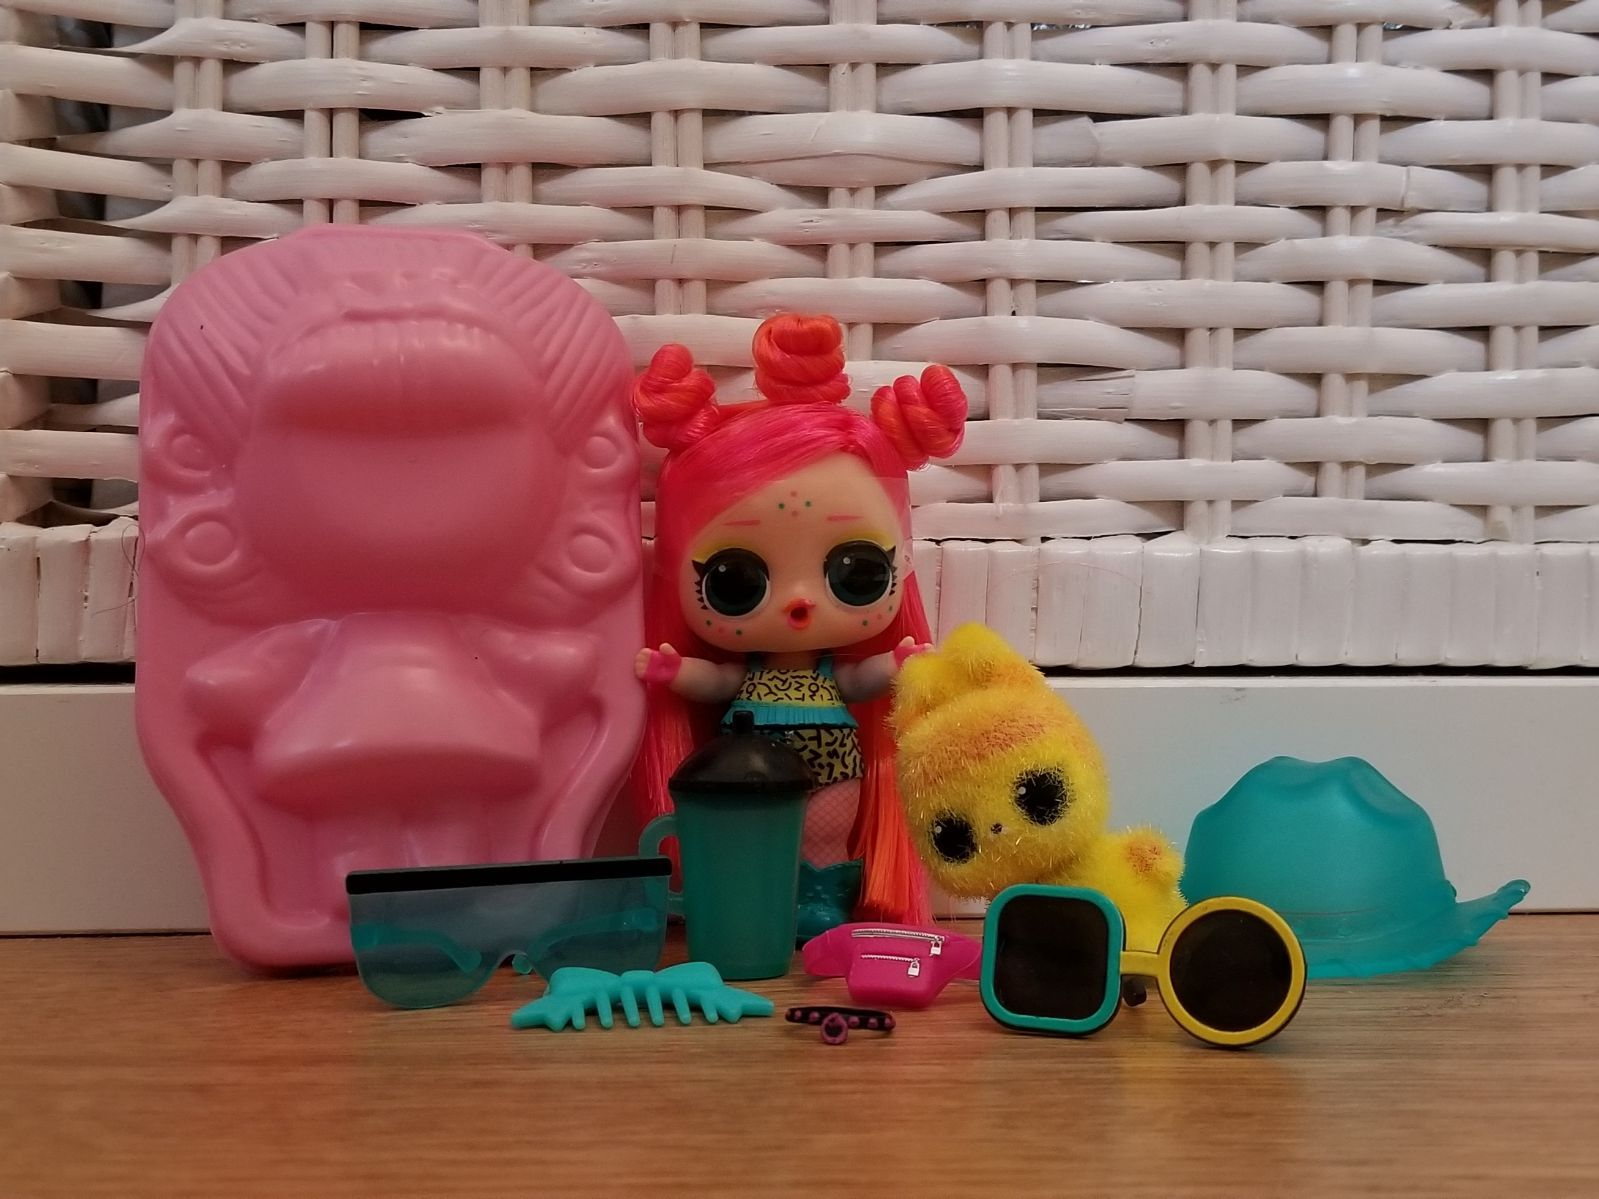 Lol Hairgoals Never Played With Edmbb And Still Fuzzy Edm Bun Lol Toys Shop Playset